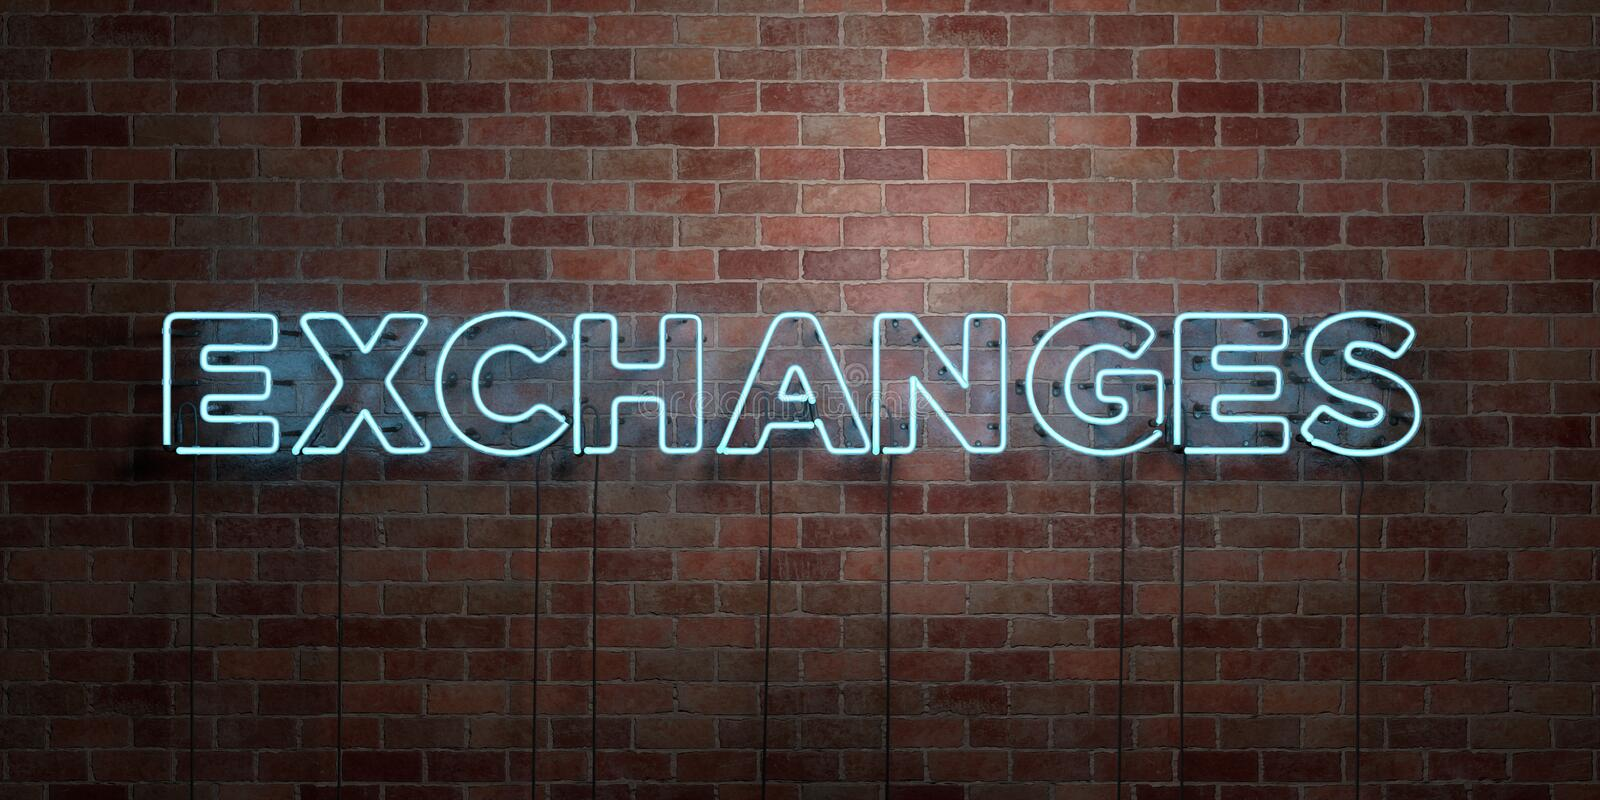 EXCHANGES - fluorescent Neon tube Sign on brickwork - Front view - 3D rendered royalty free stock picture. Can be used for online banner ads and direct mailers vector illustration